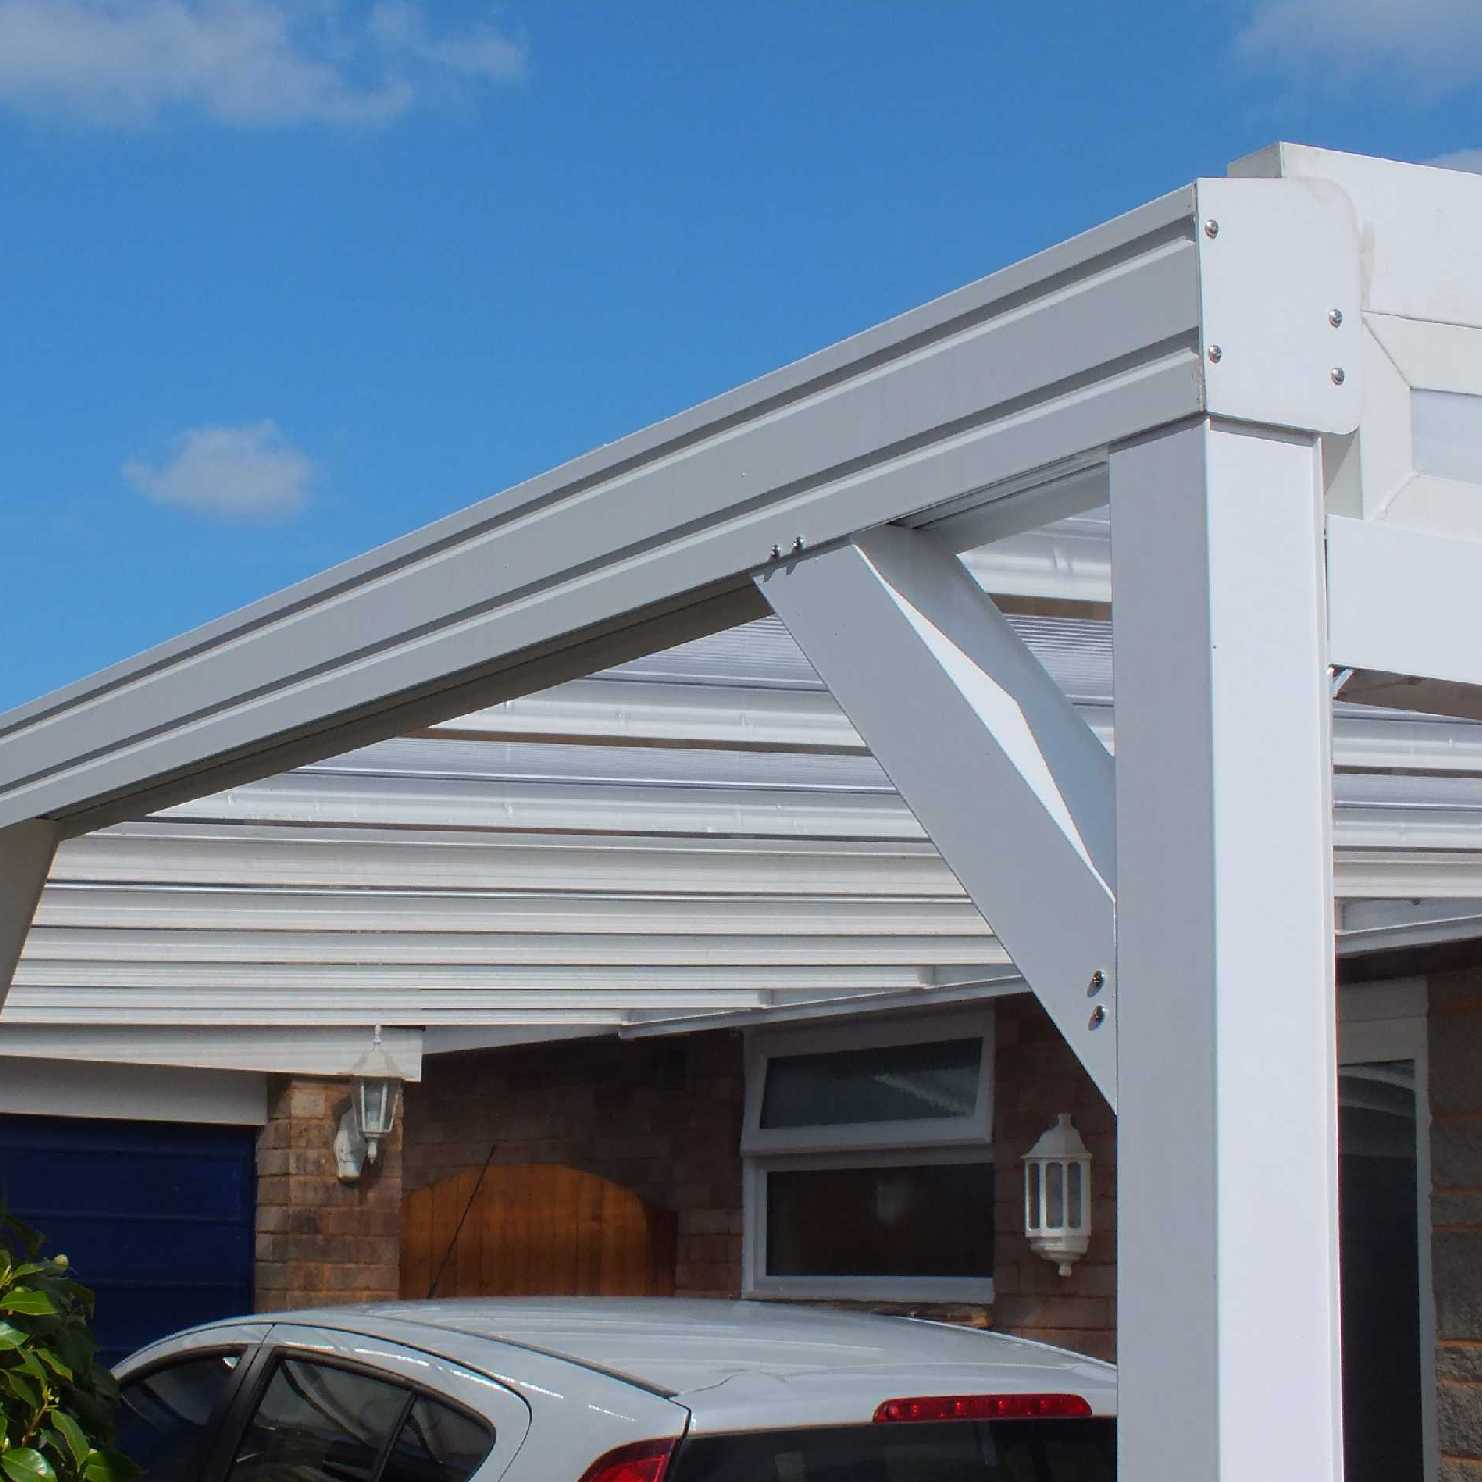 Great deals on Omega Smart Lean-To Canopy with 16mm Polycarbonate Glazing - 2.1m (W) x 1.5m (P), (2) Supporting Posts